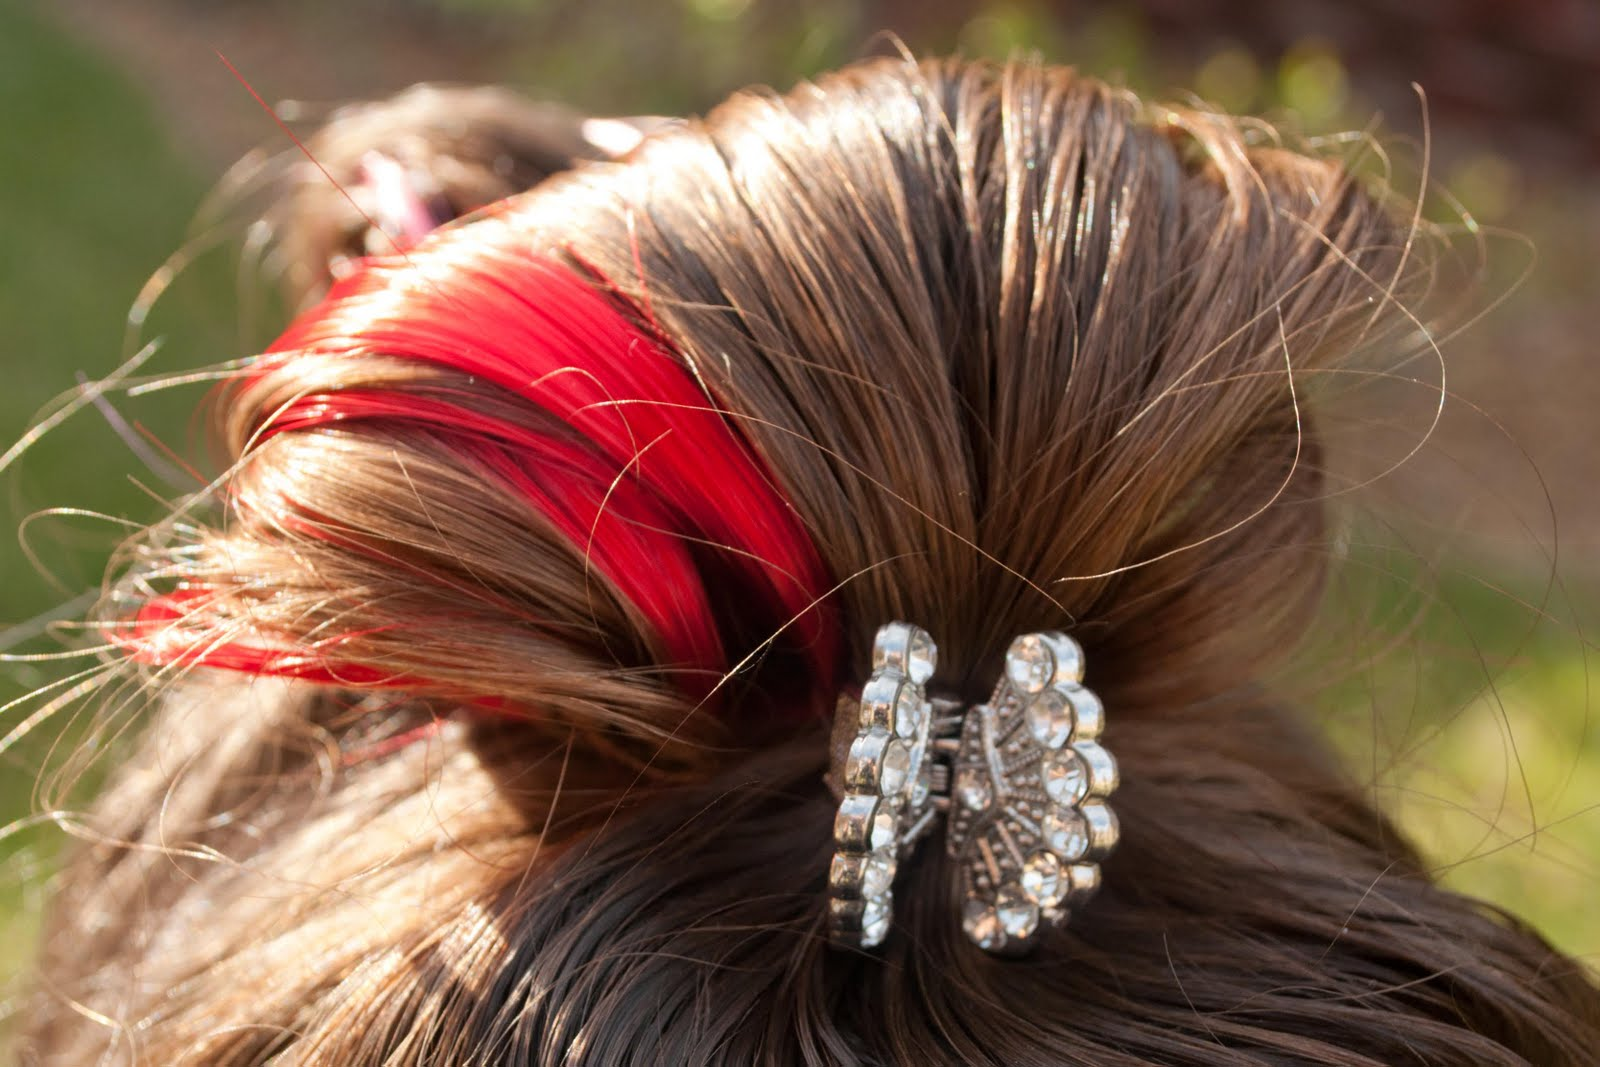 Prom Hairstyles For Medium Hair Half Up Half Down  the colored hair up through the elastic just to secure it tightly